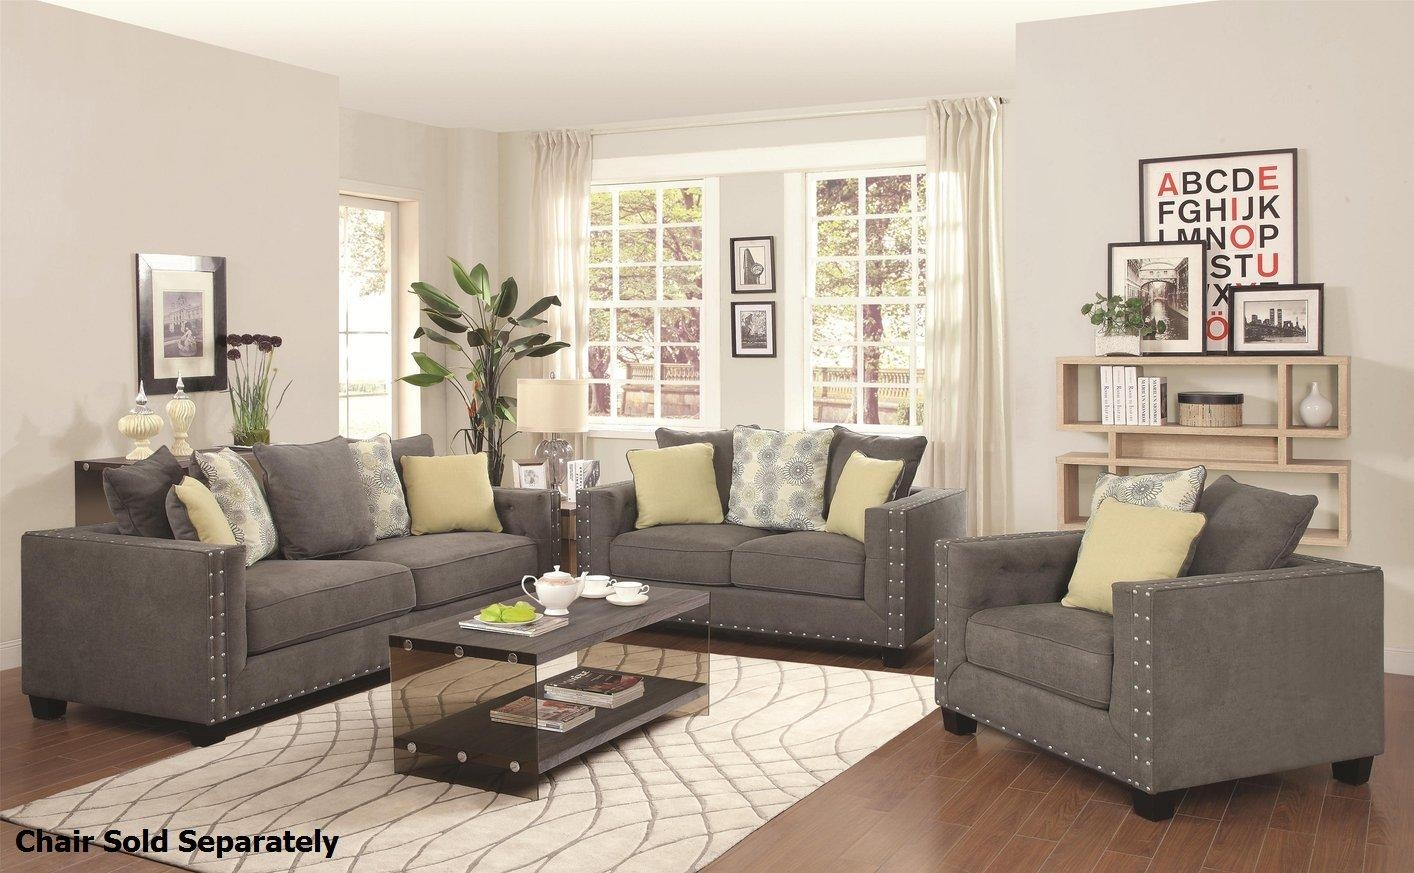 Kelvington Grey Fabric Reclining Sofa And Loveseat Set – Steal A Regarding Reclining Sofas And Loveseats Sets (Image 6 of 20)